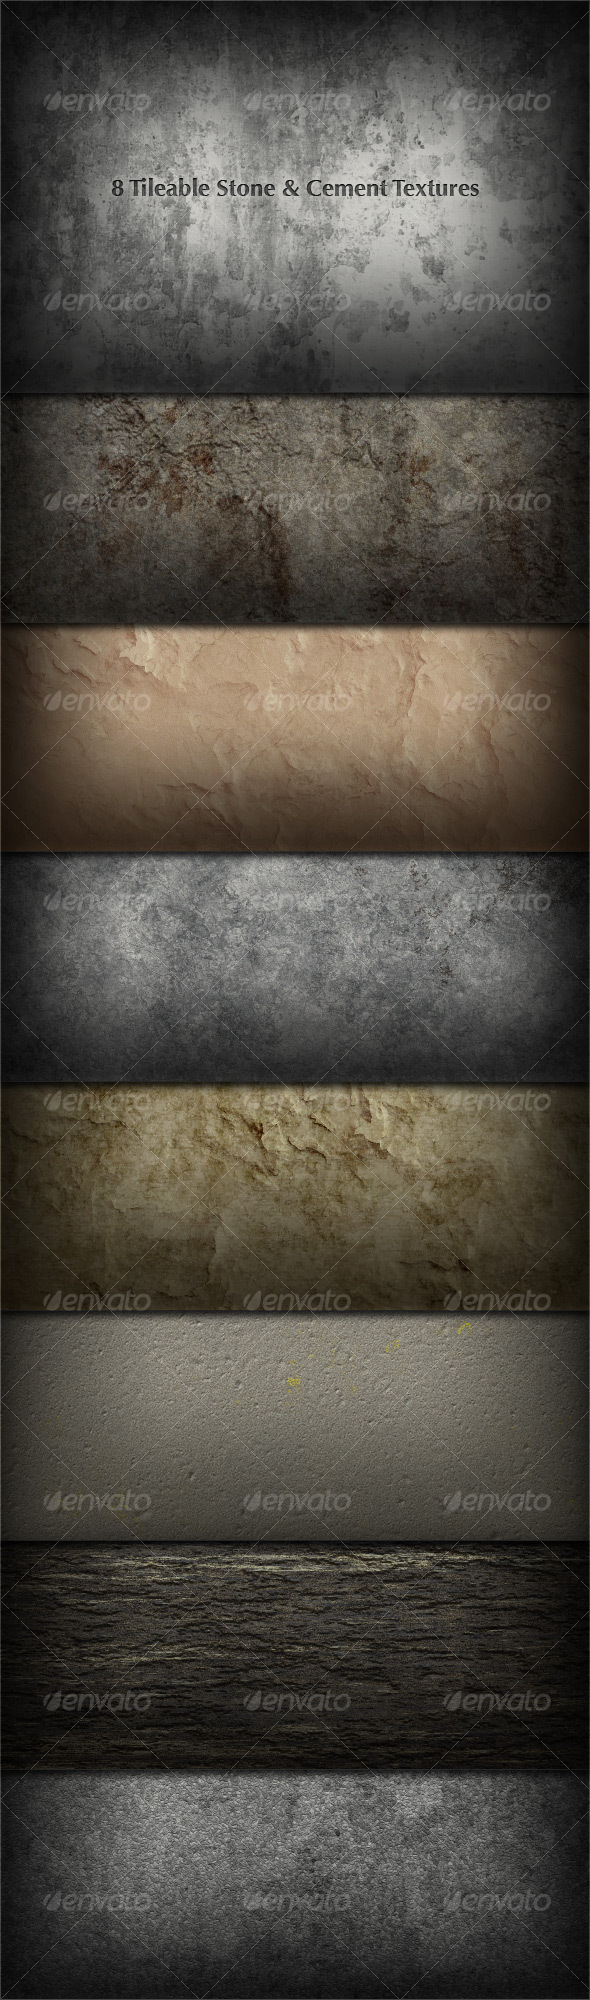 8 Tileable Stone/Concrete/Plaster Textures - Miscellaneous Textures / Fills / Patterns